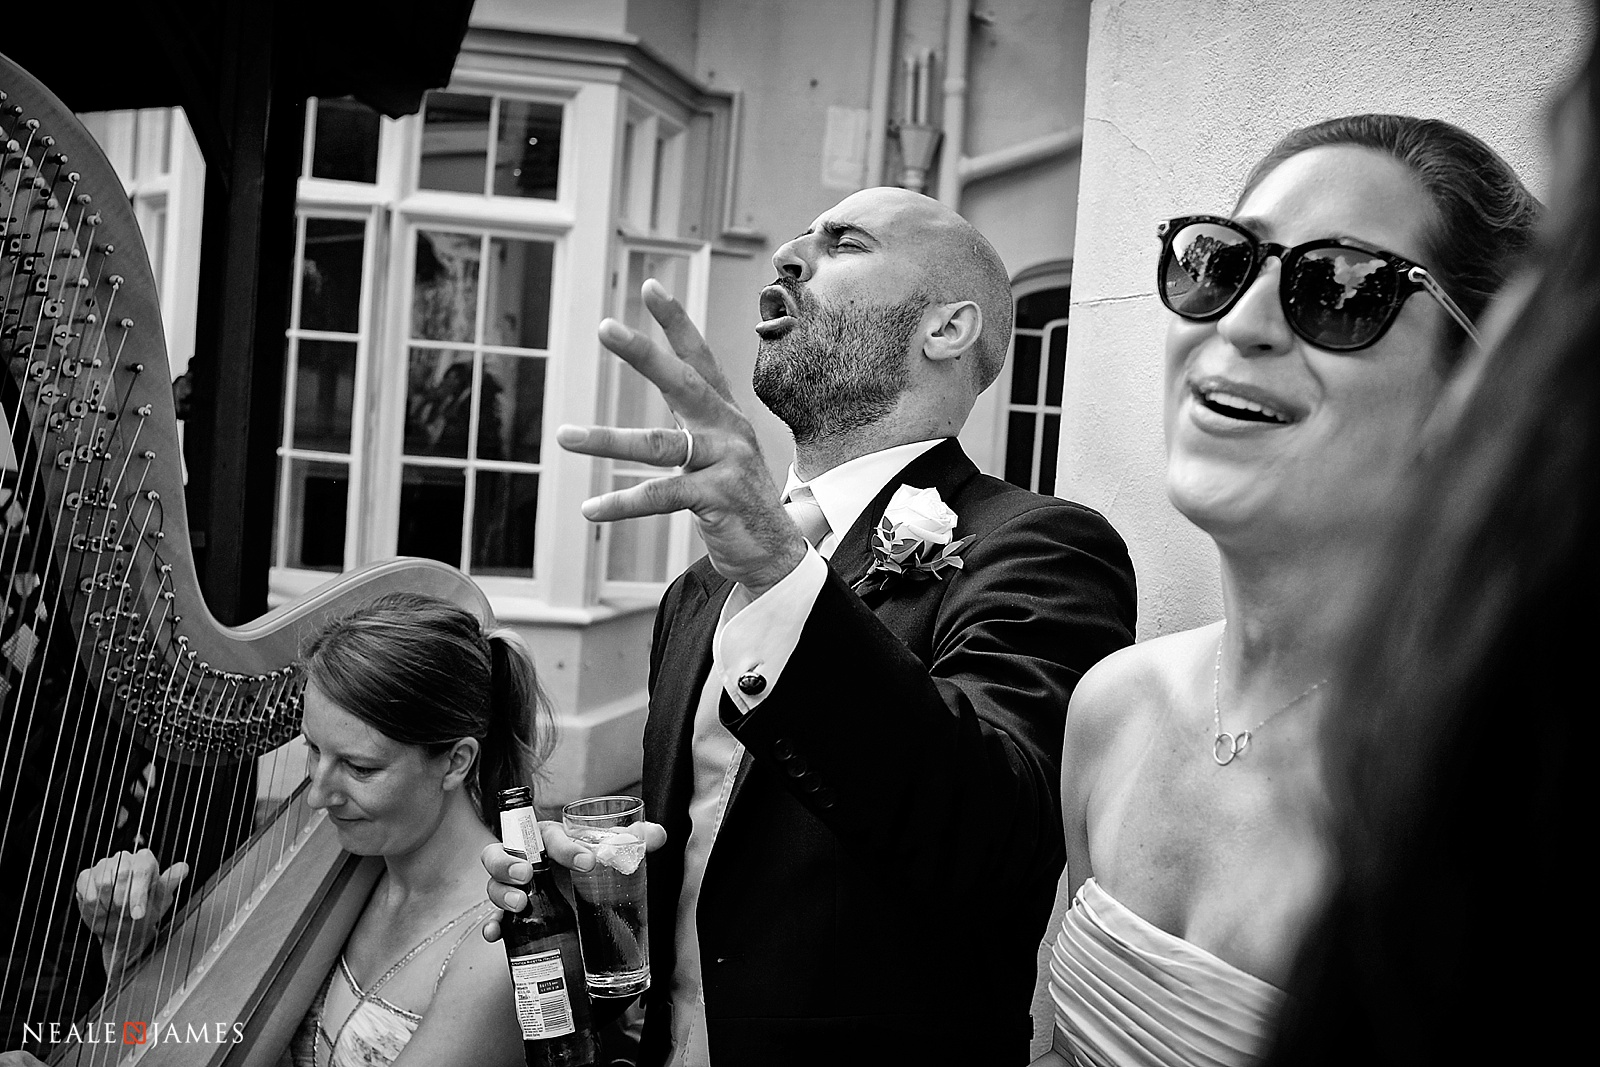 Black and white wedding photograph of guests close up, taken with a Fujifilm X100 camera